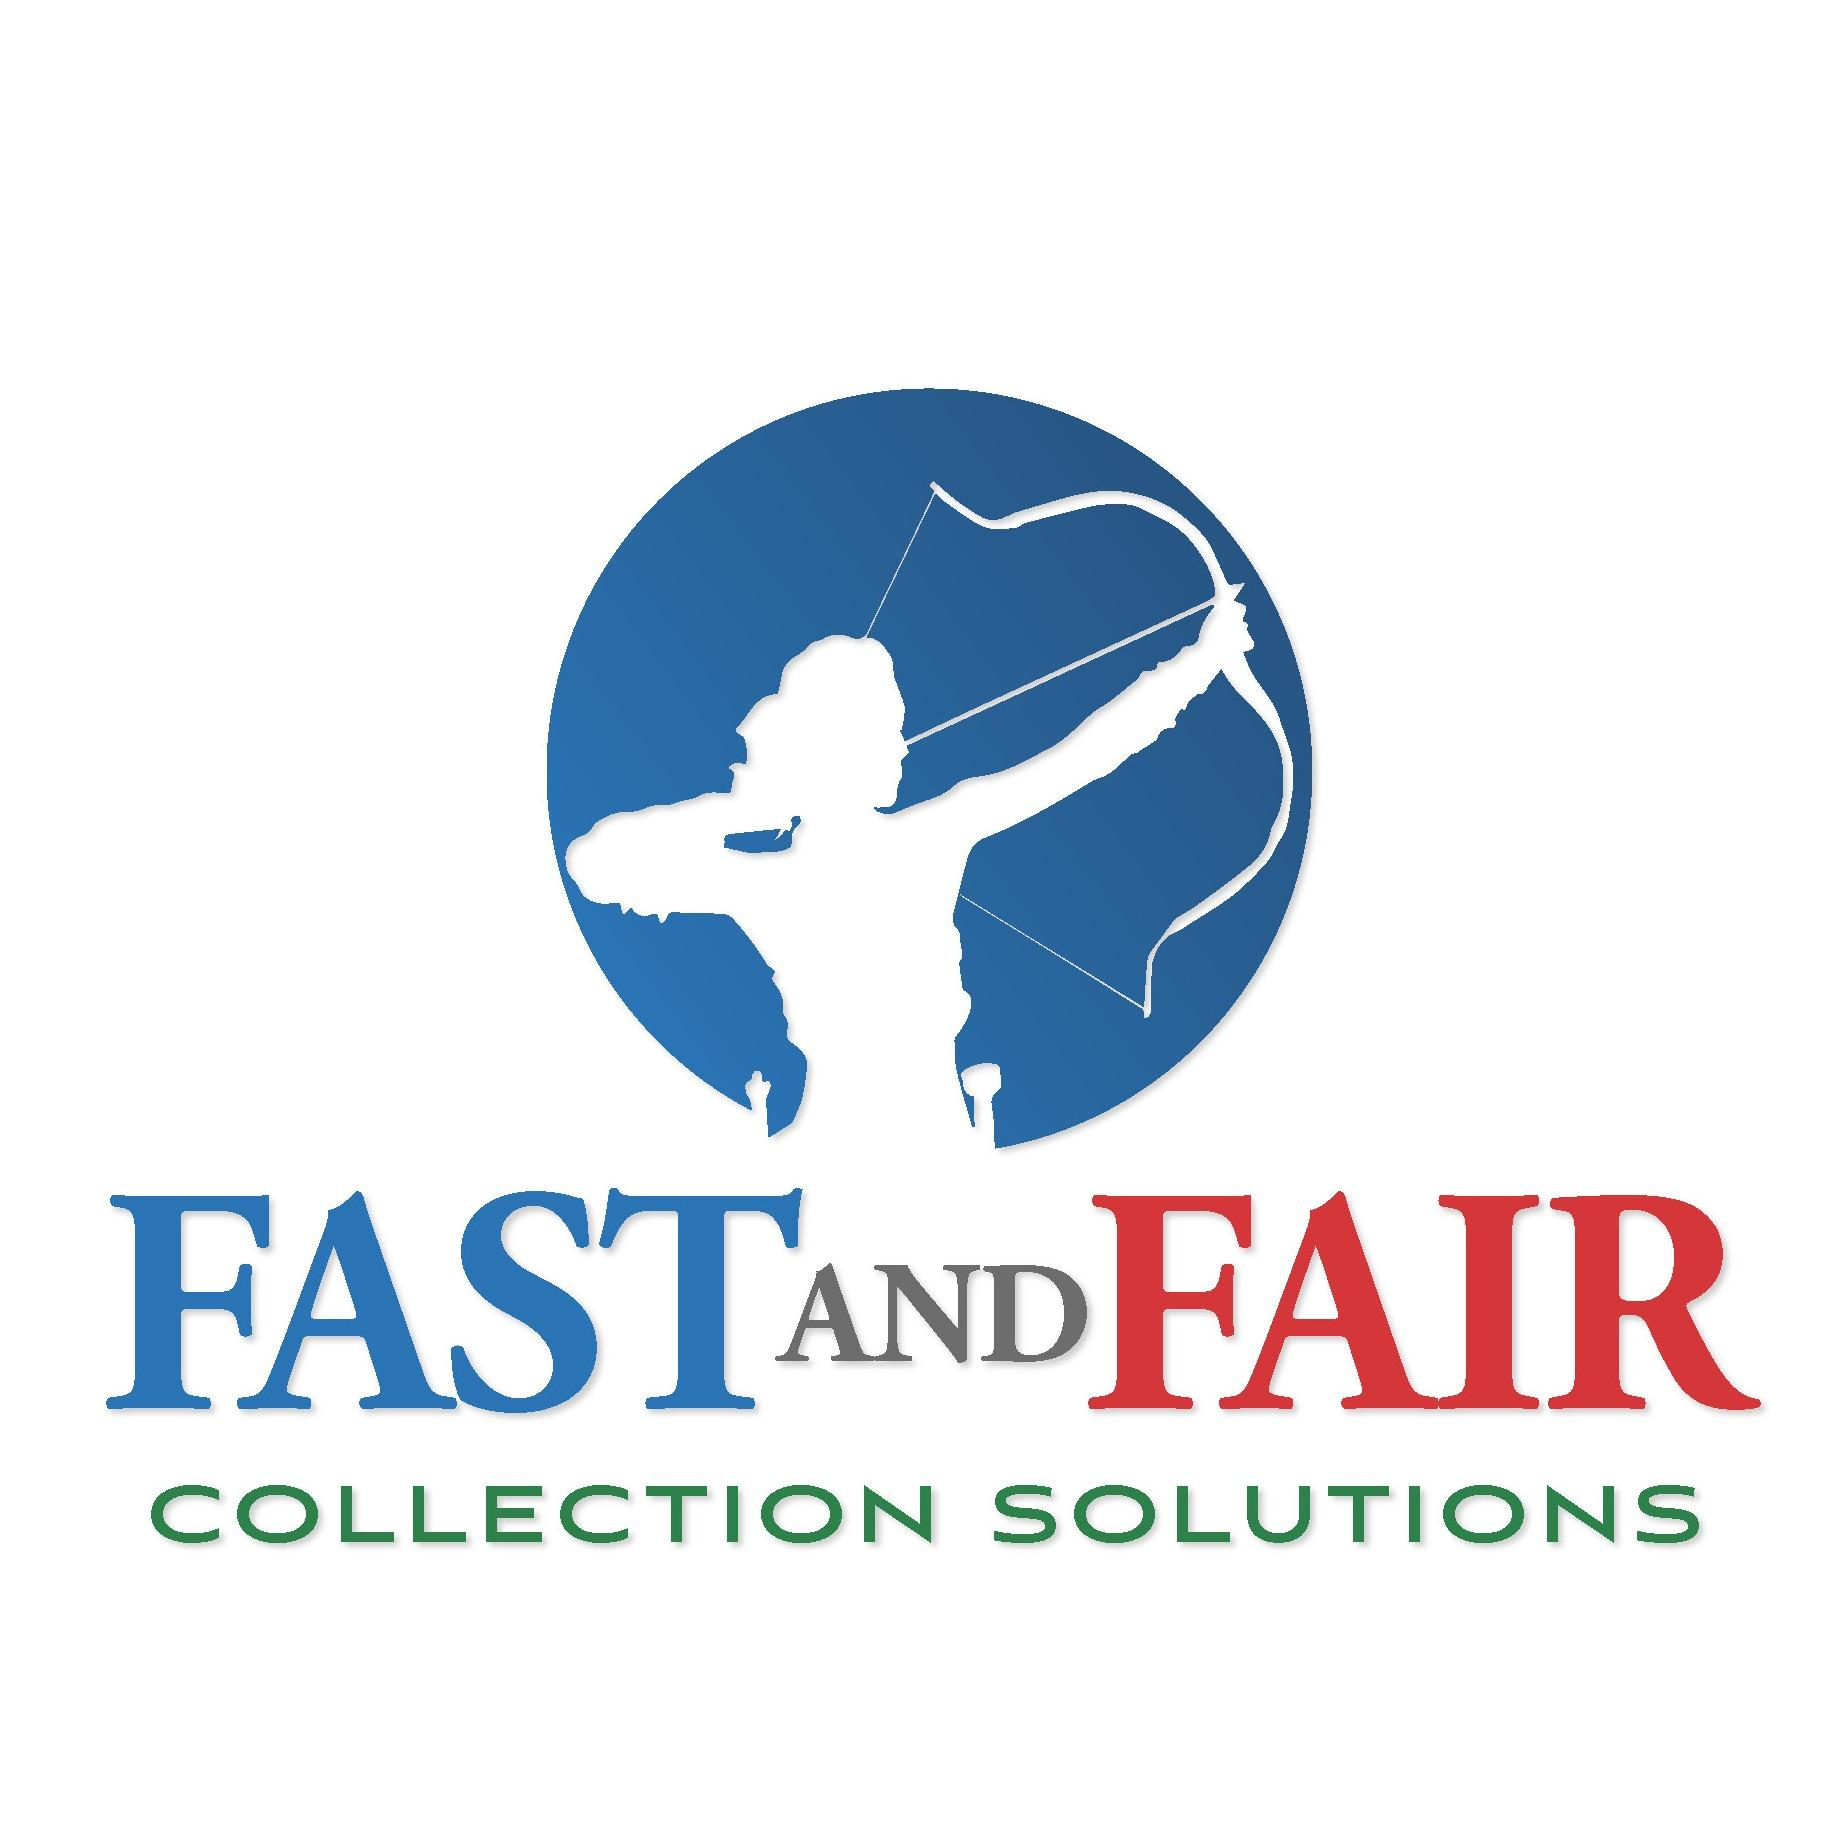 Fast And Fair Collection Solutions